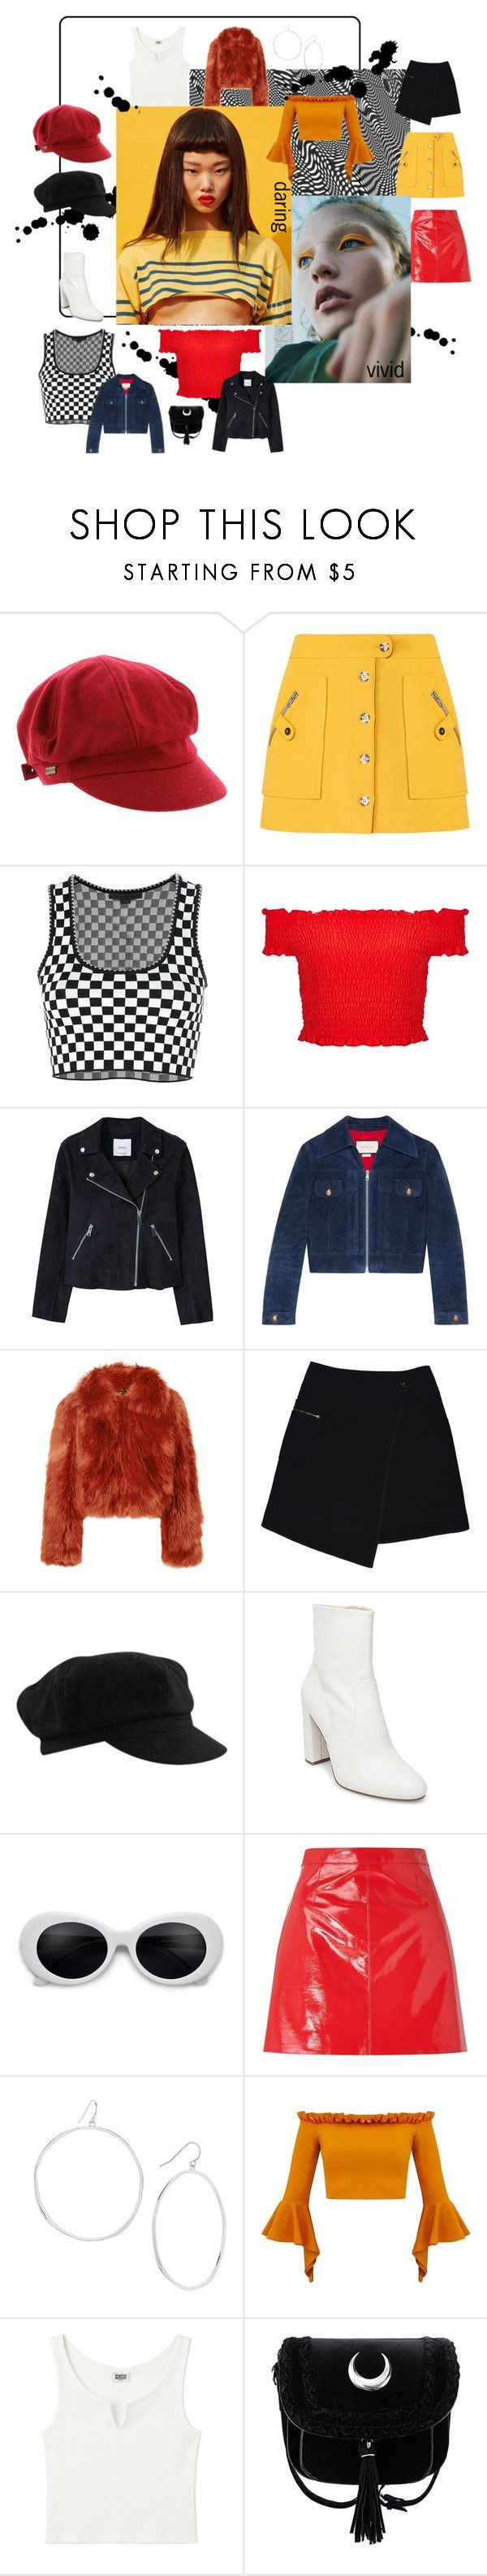 """""""Blast from the past"""" by snw62 ❤ liked on Polyvore featuring Betmar, Alexander Wang, Miss Selfridge, MANGO, Gucci, Maison Margiela, MARC CAIN, Steve Madden, Gorjana and contest"""